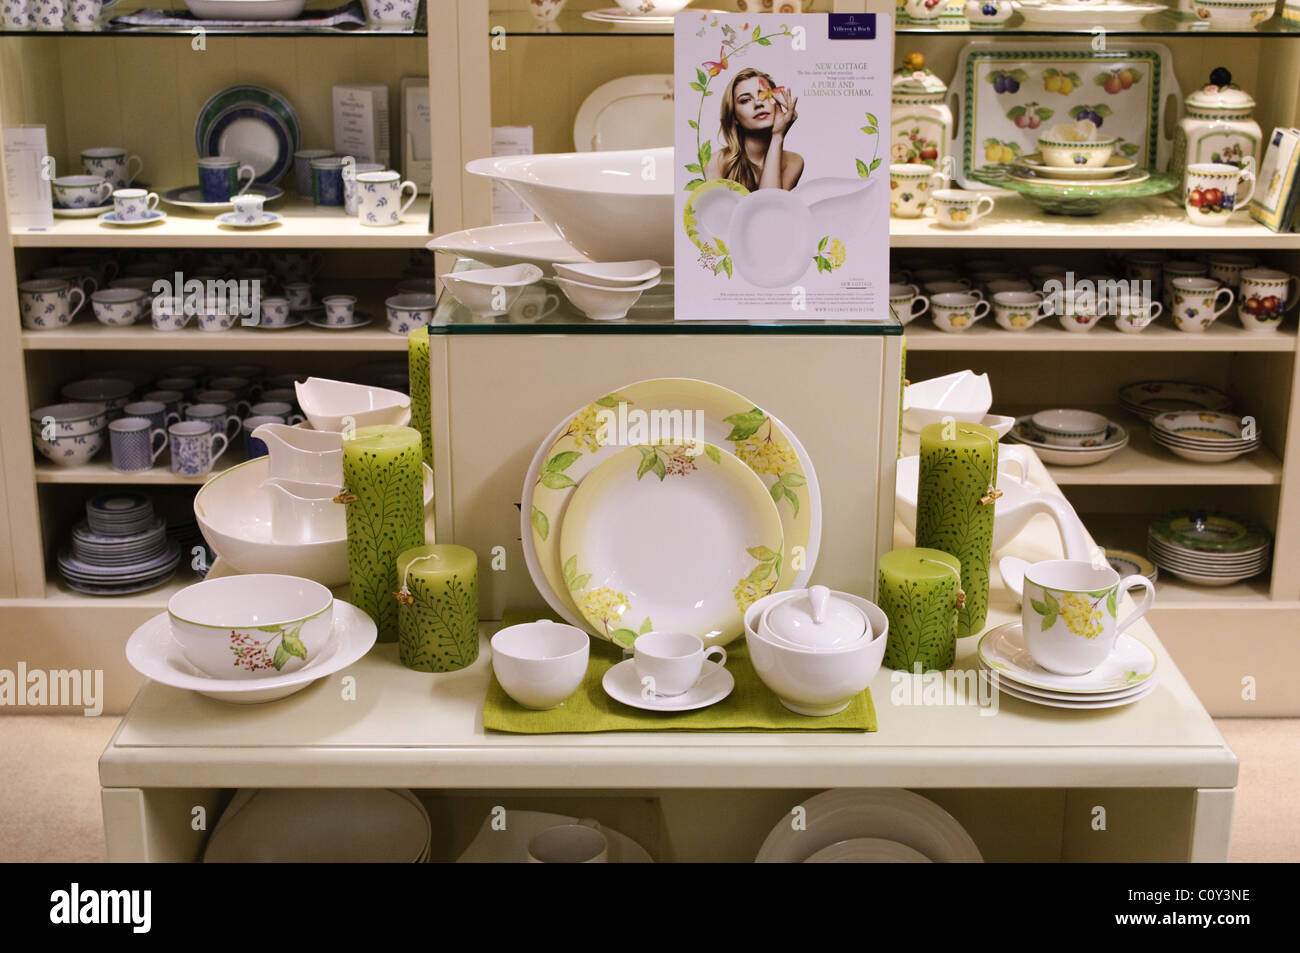 villeroy boch tableware on display in a china shop stock photo 35016394 alamy. Black Bedroom Furniture Sets. Home Design Ideas